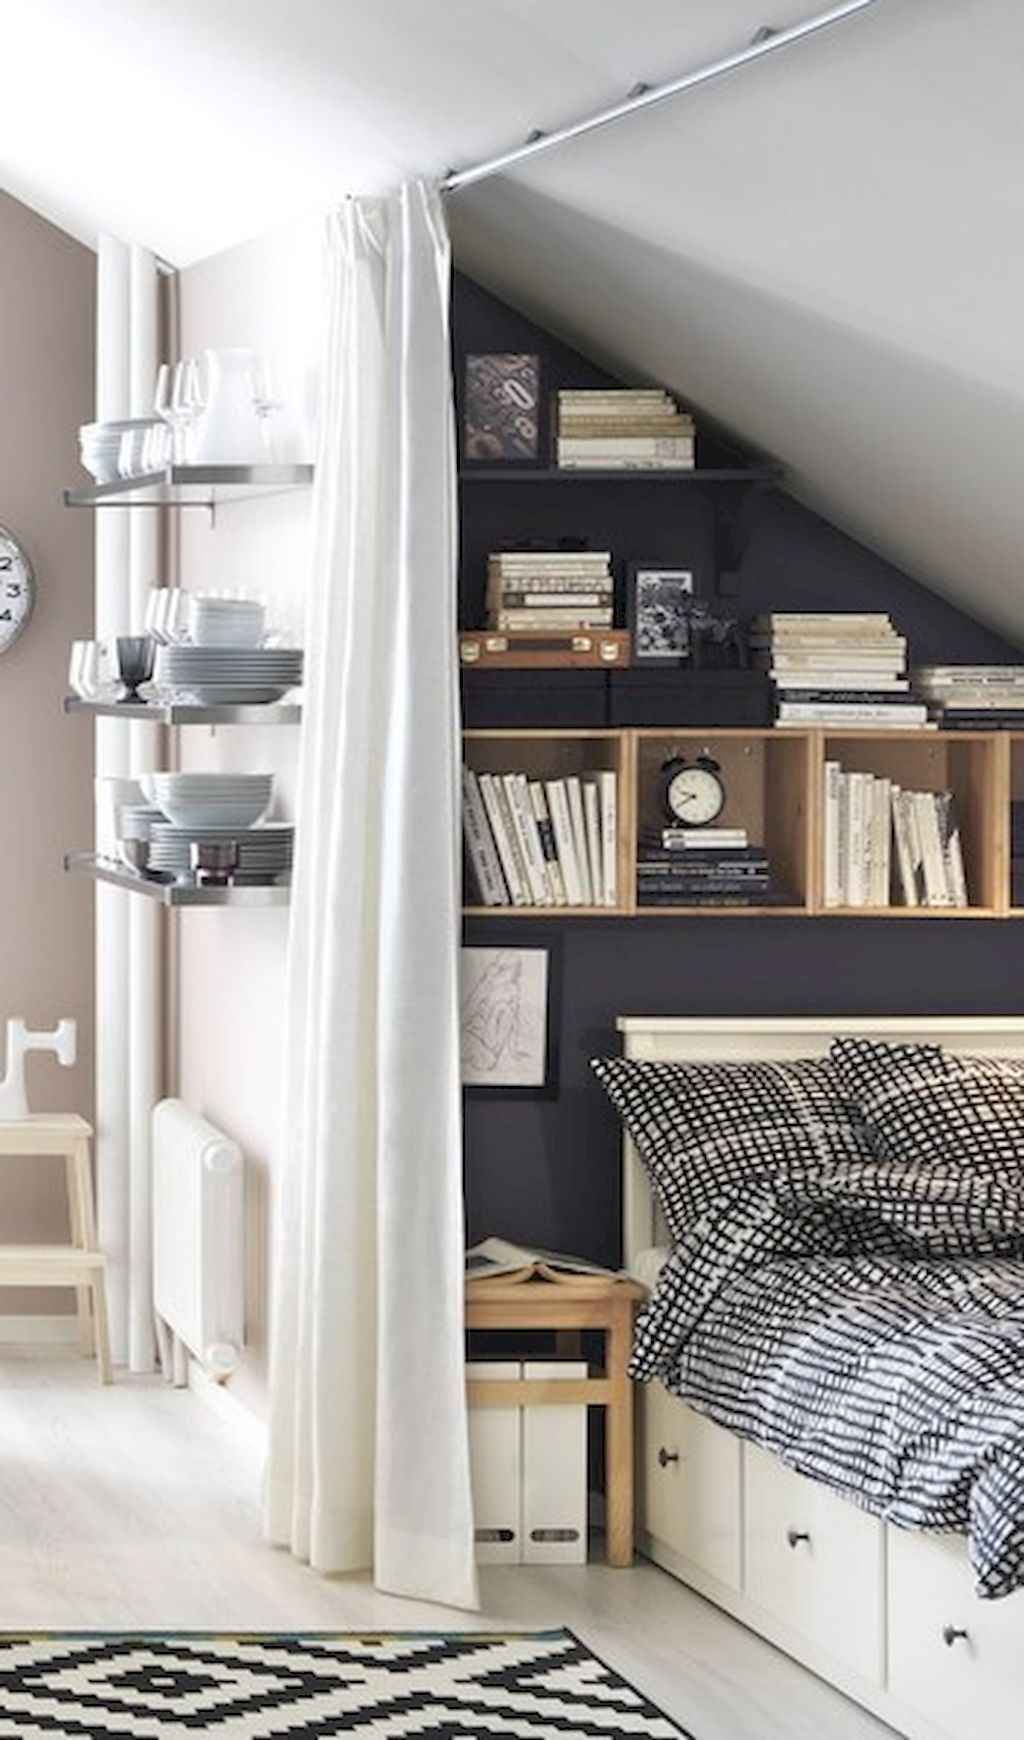 Cool small apartment decorating ideas on a budget (22)